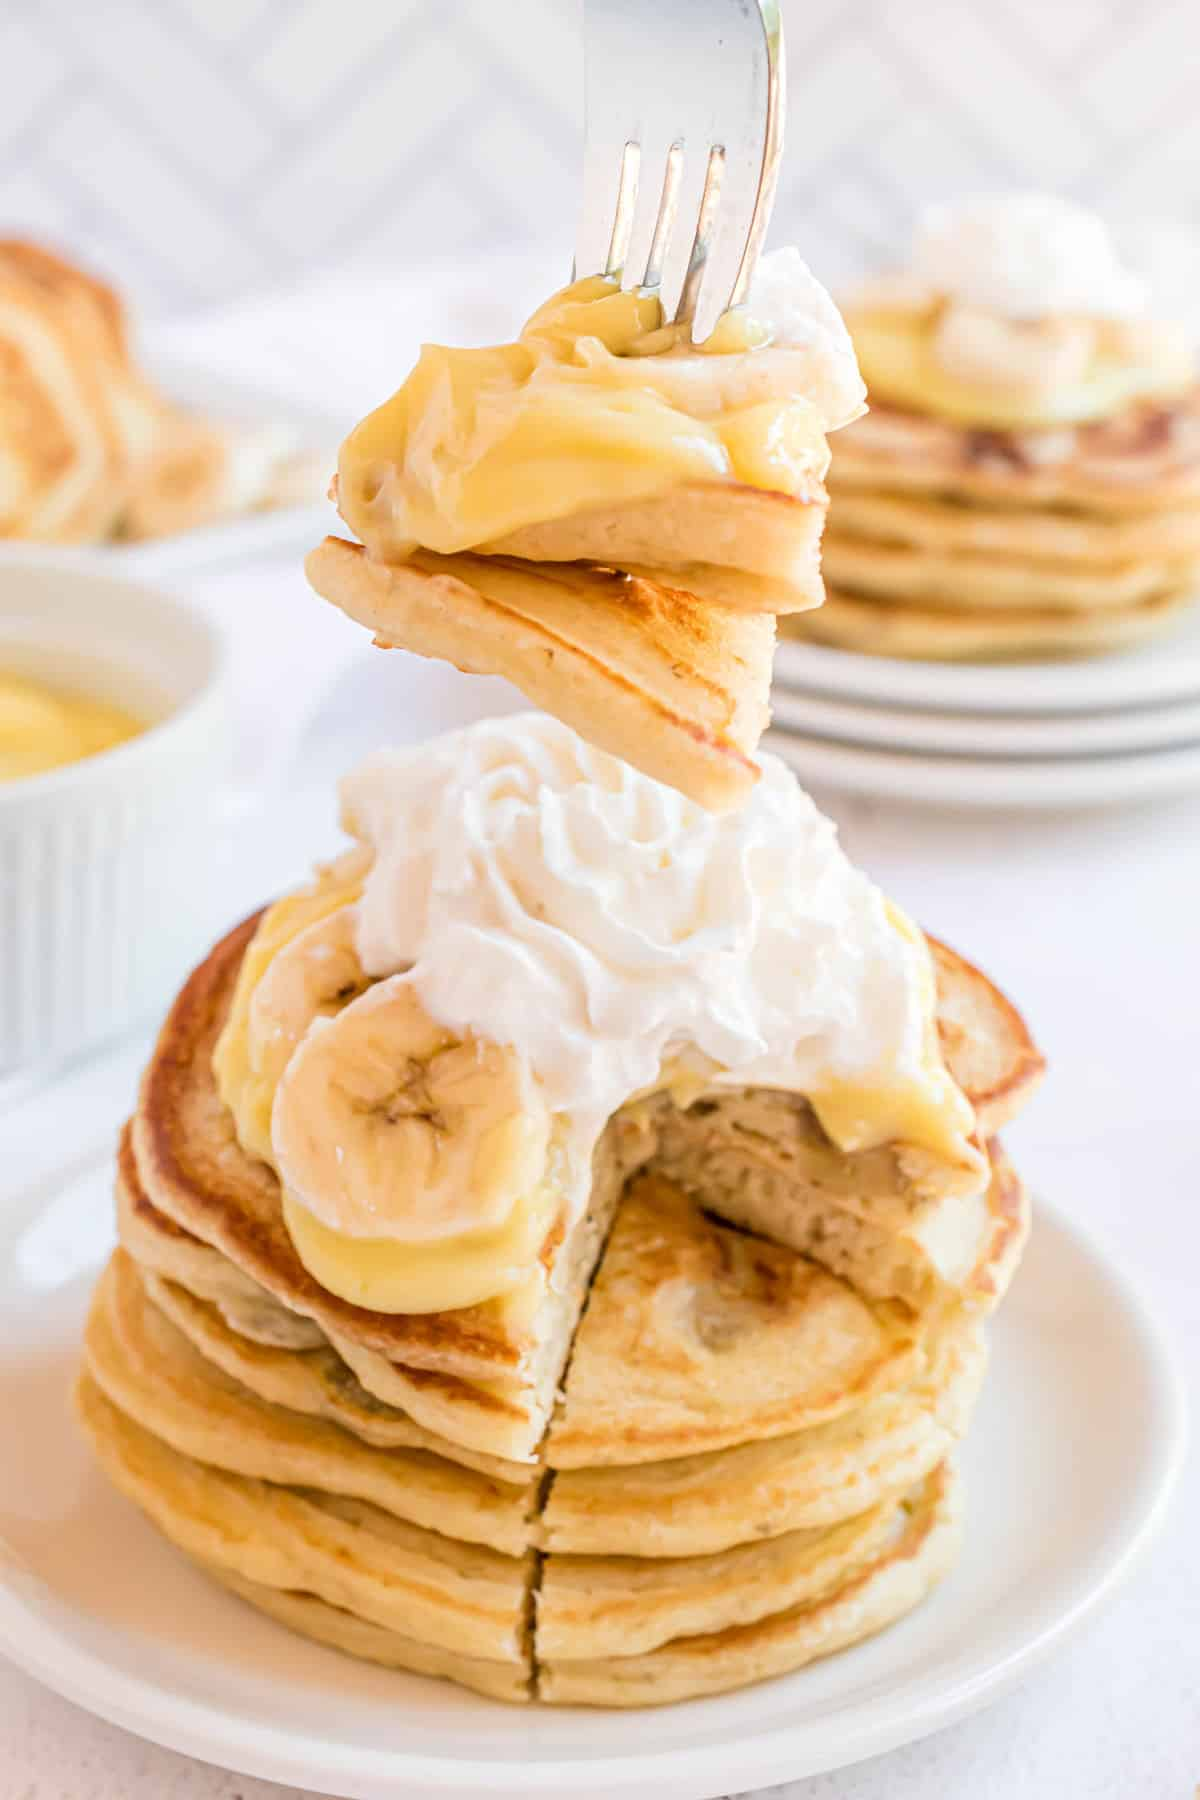 Banana pancakes on a fork, with a stack behind them.